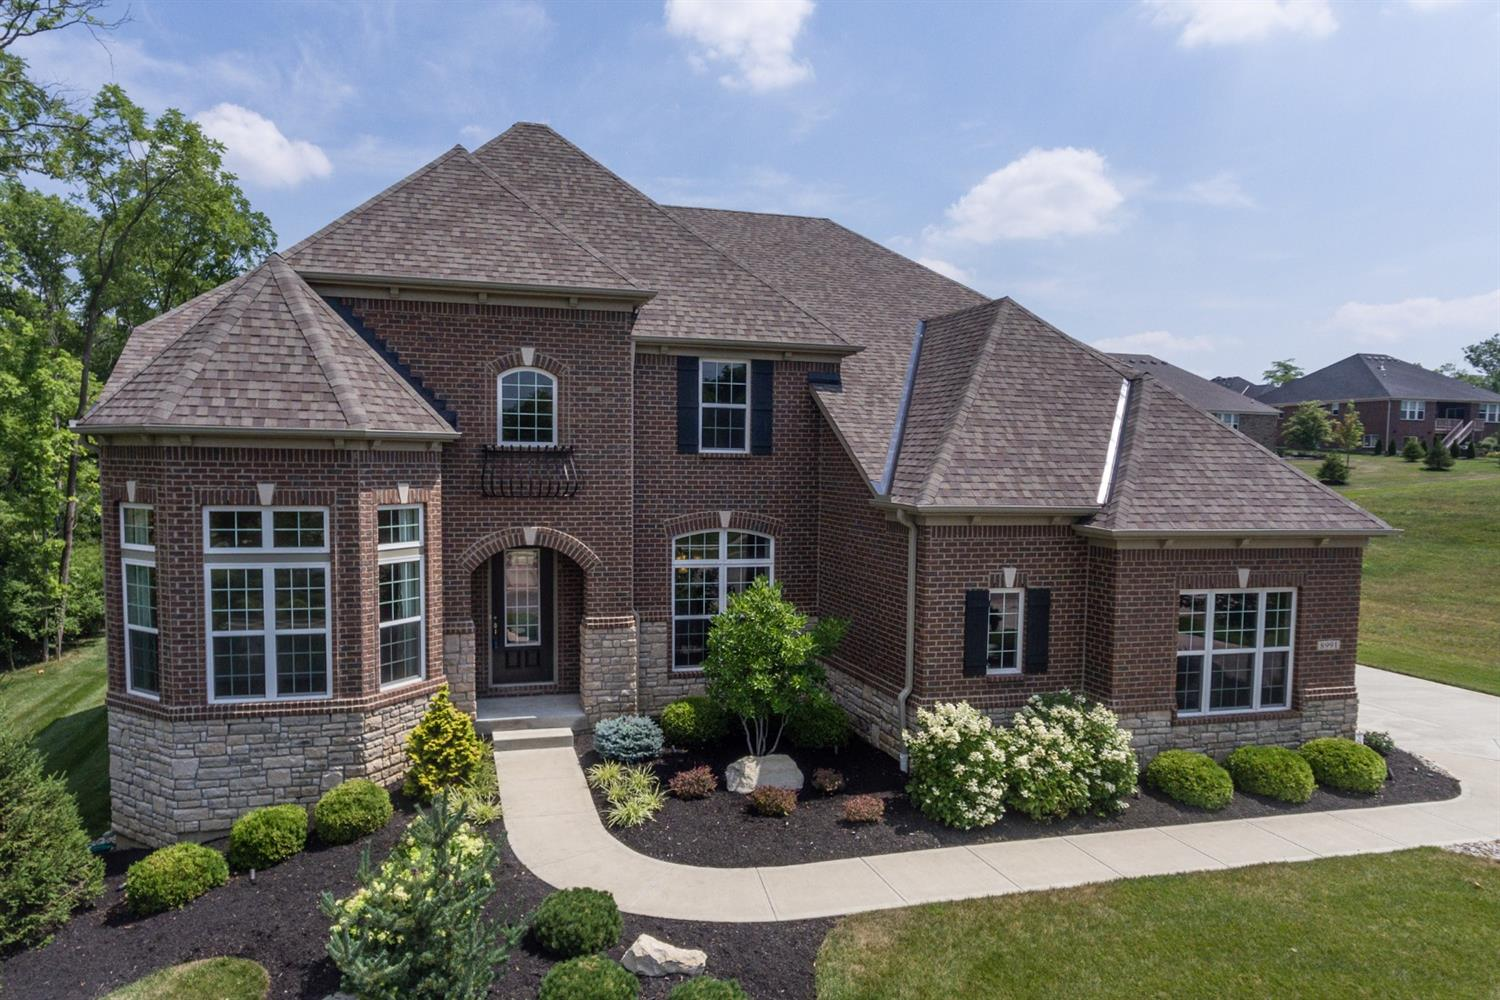 8991 Oakcrest Wy West Chester - East, OH